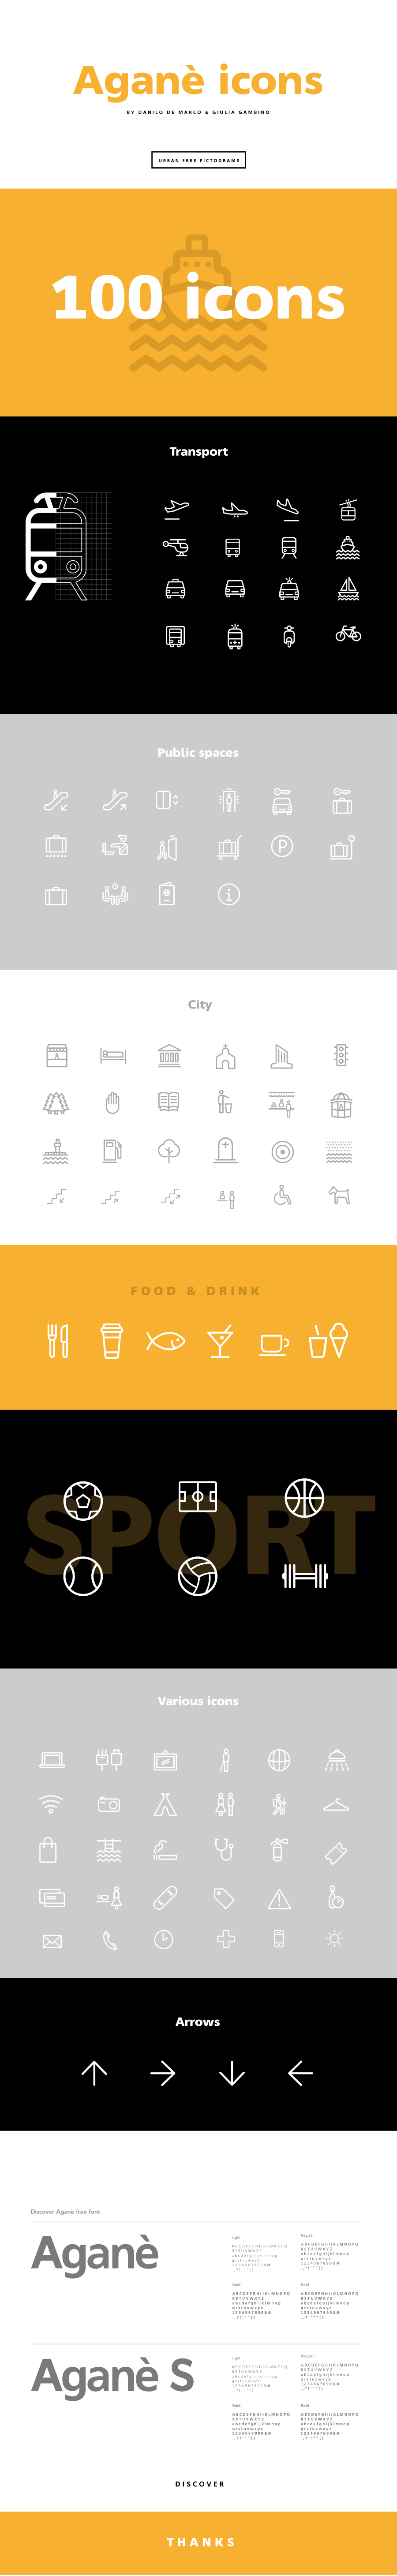 Aganè Free Vector Icon Pack